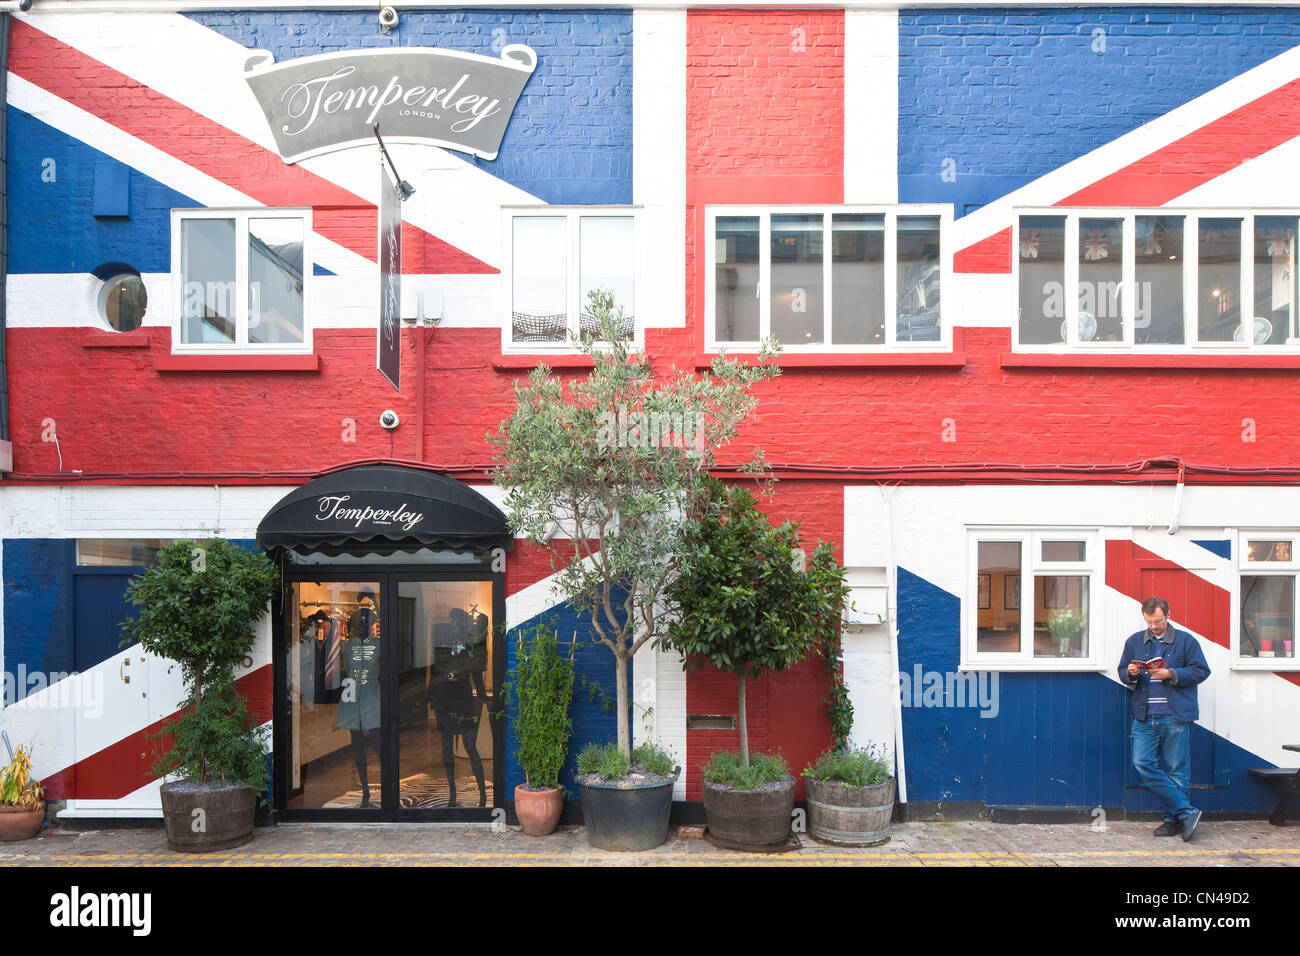 United Kingdom, London, Notting Hill, Temperley fashion store with Union Jack painted on the front - Stock Image